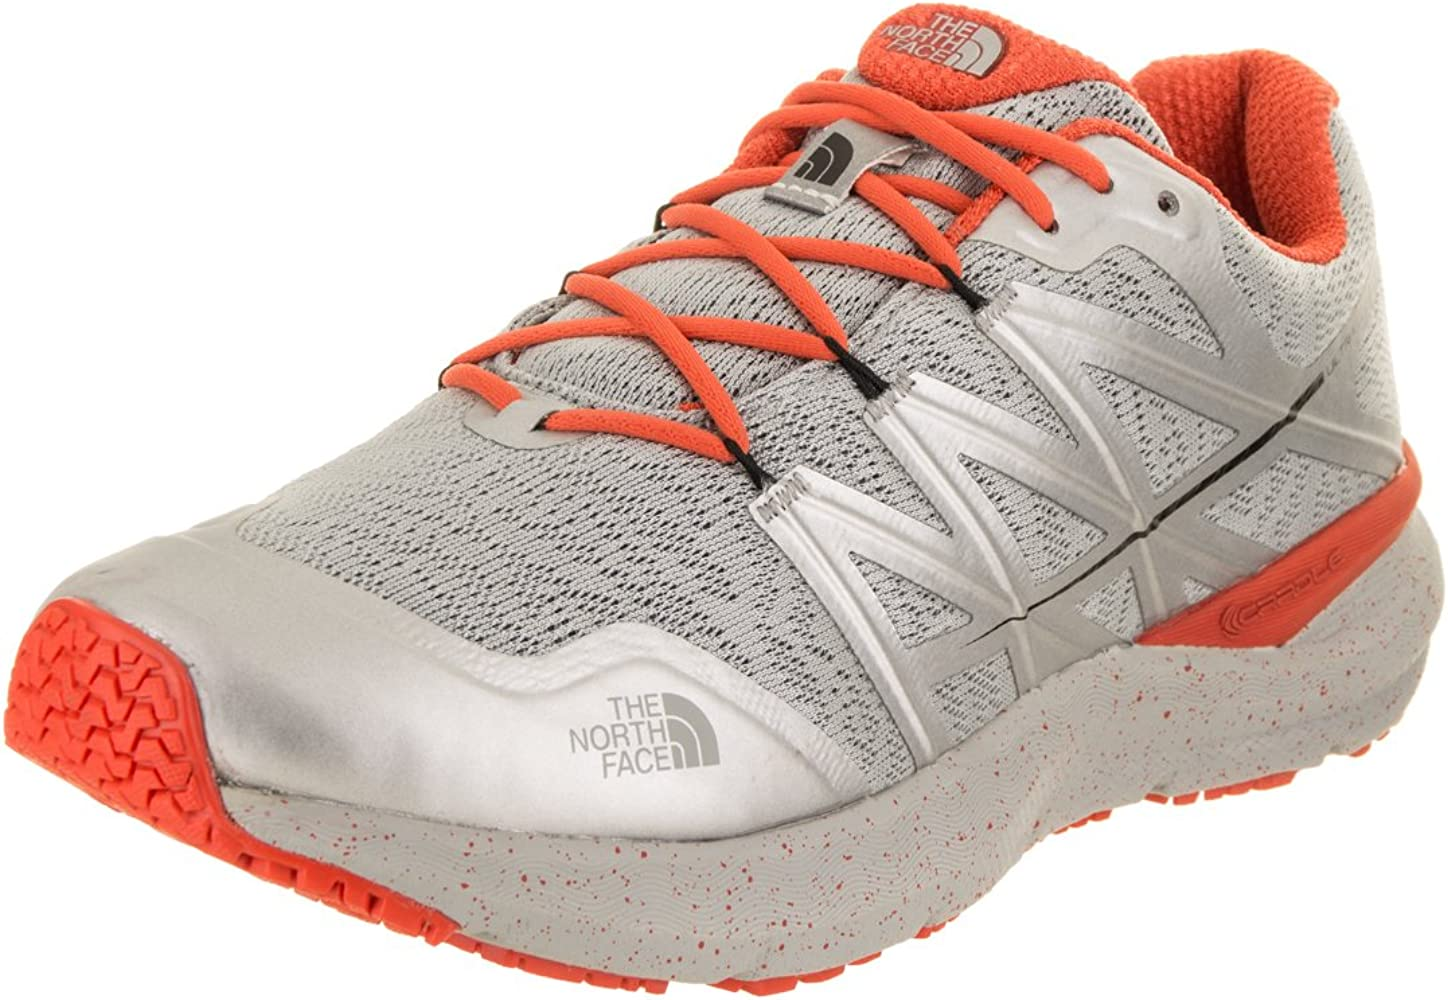 THE NORTH FACE Ultra excursión el Zapato Cardiaca II 12 de EE.UU. Hombre High Rise Gris/Naranja Valencia 12 D (M) US: Amazon.es: Zapatos y complementos